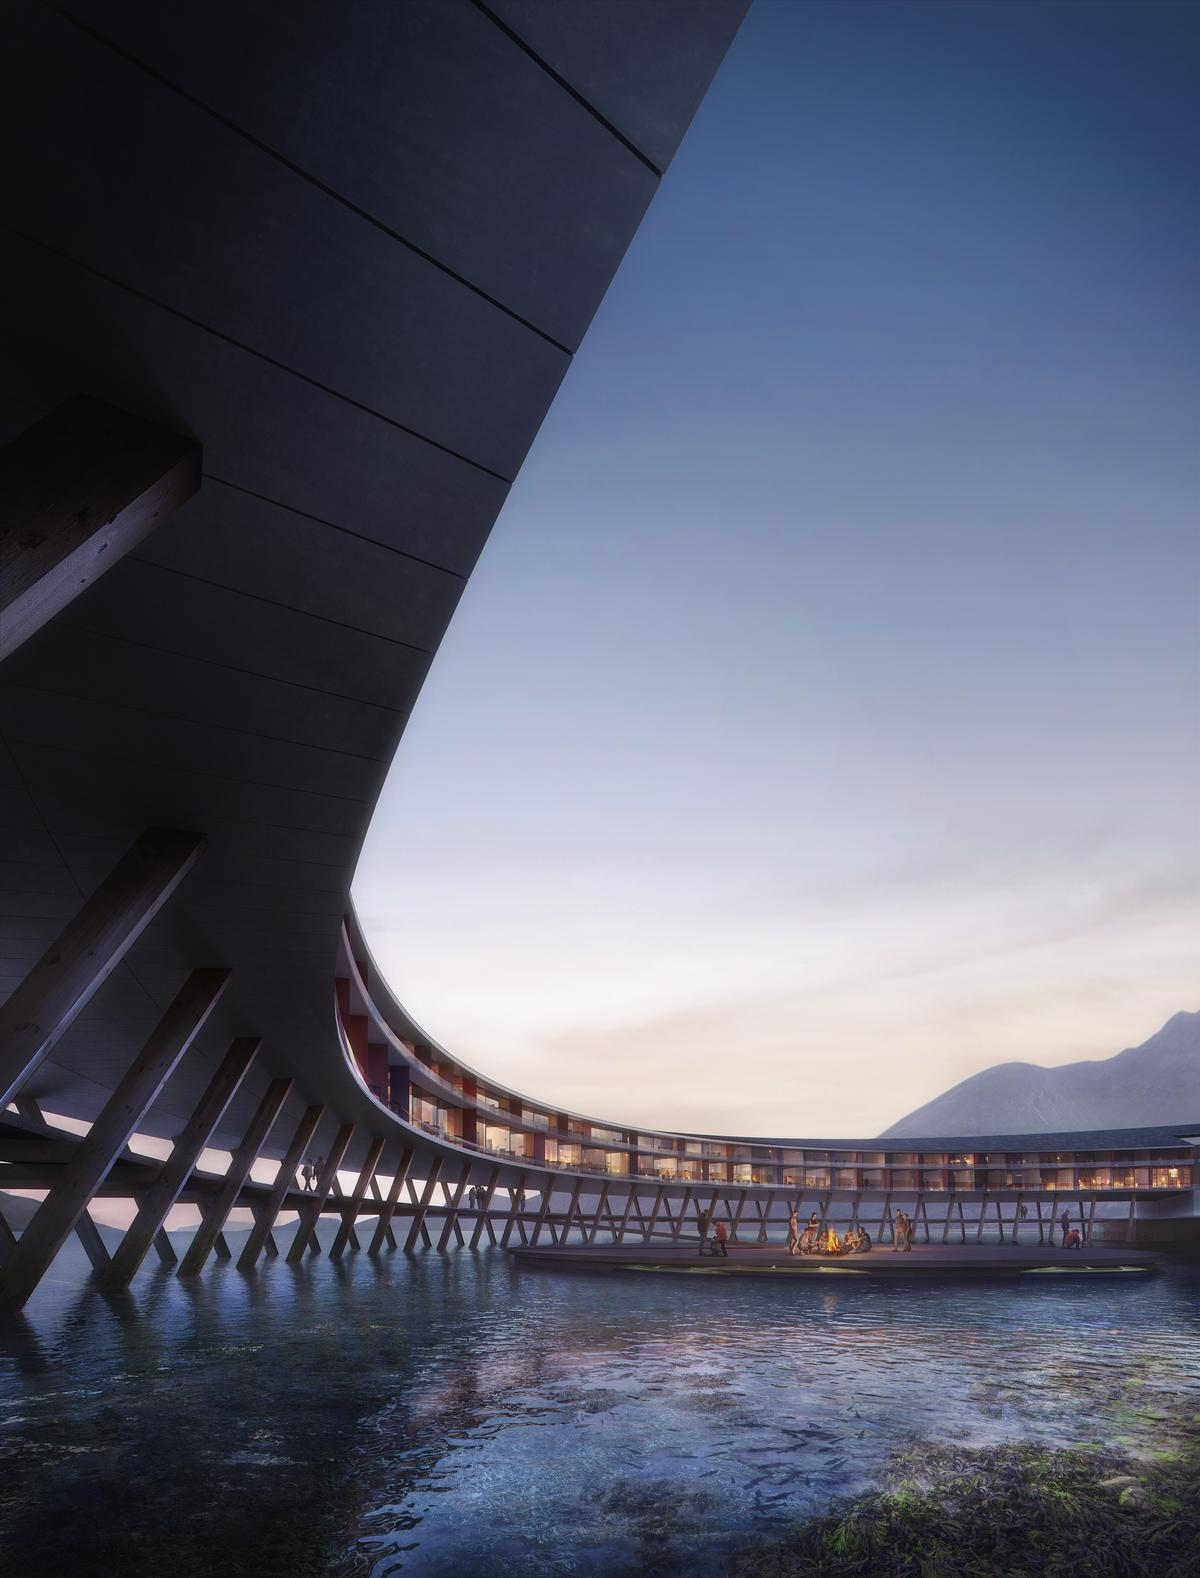 The circular hotel will be raised up above the fjord on a wooden supporting structure / Plompmozes